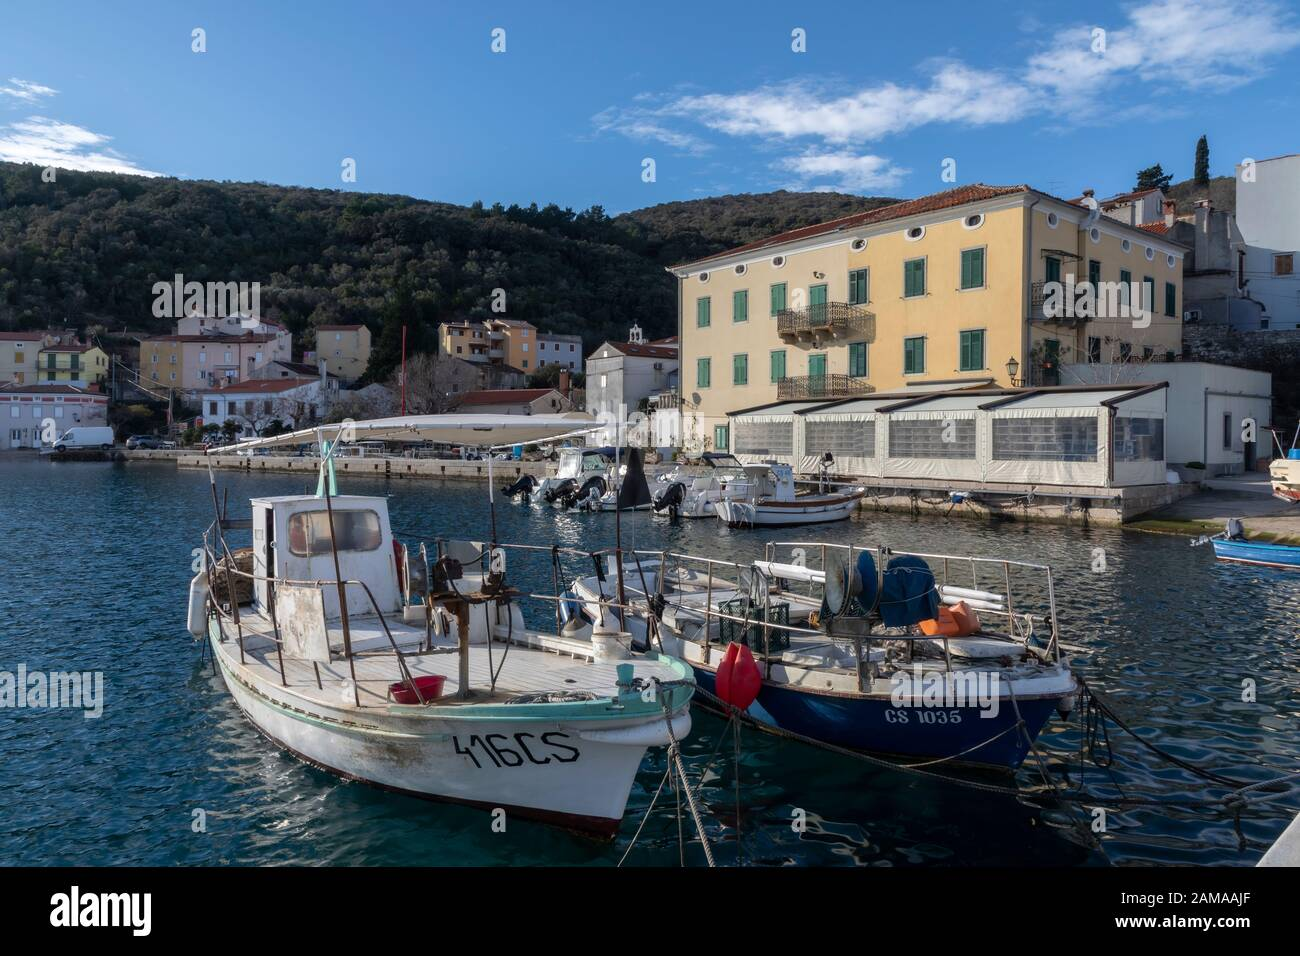 Valun, Island Cres, Croatia - January 1, 2020:  old town and port of Valun.It´s a small fishing village on the island Cres in the kvarner gulf in croa Stock Photo